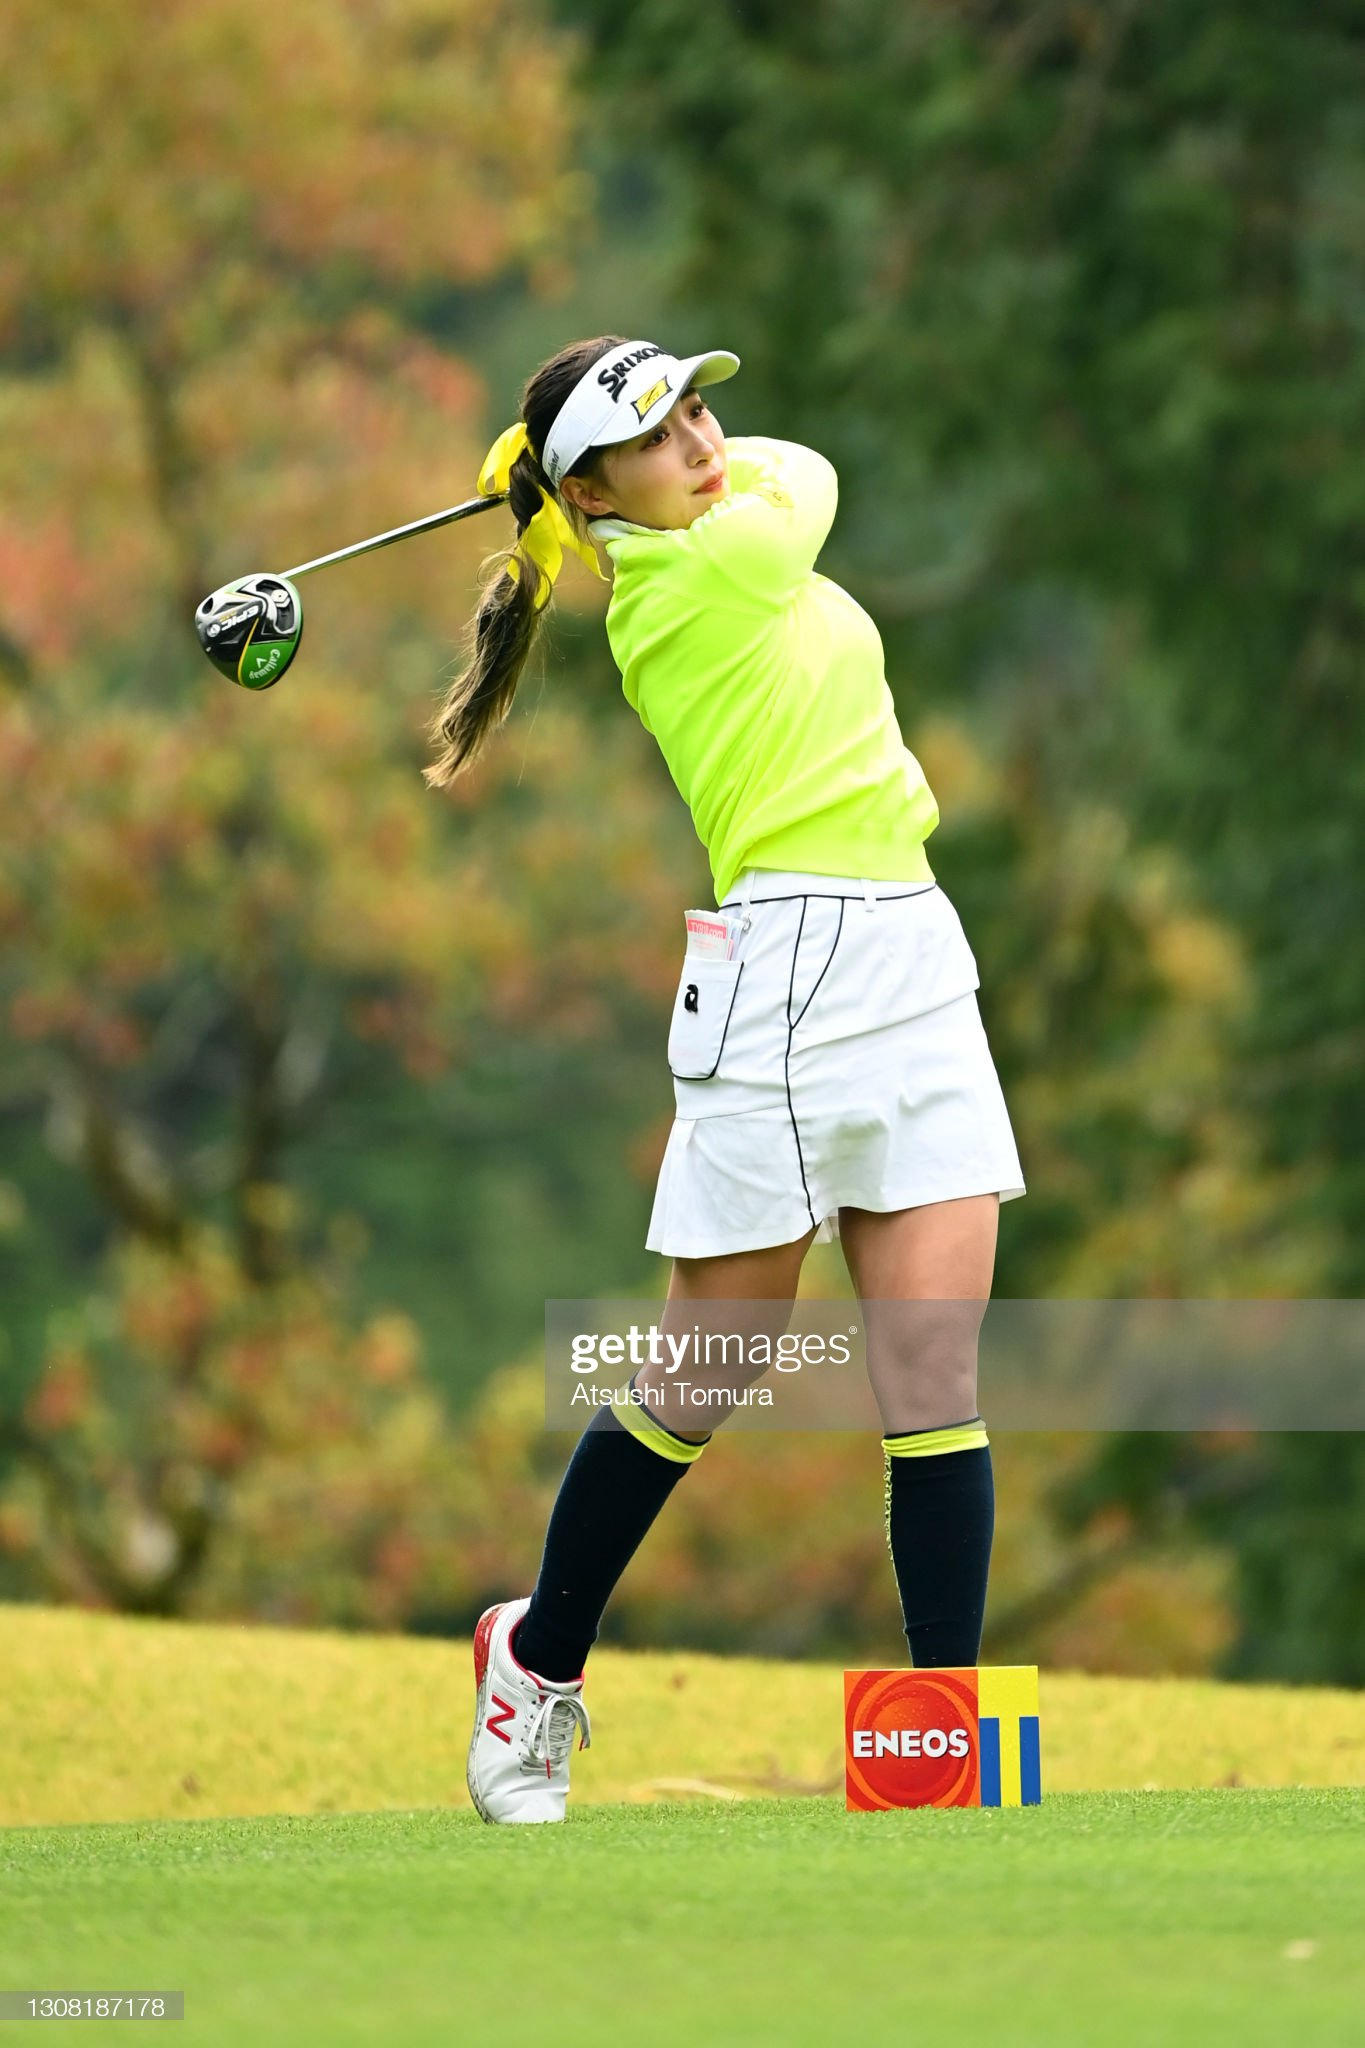 https://media.gettyimages.com/photos/reika-usui-of-japan-hits-her-tee-shot-on-the-5th-hole-during-the-of-picture-id1308187178?s=2048x2048